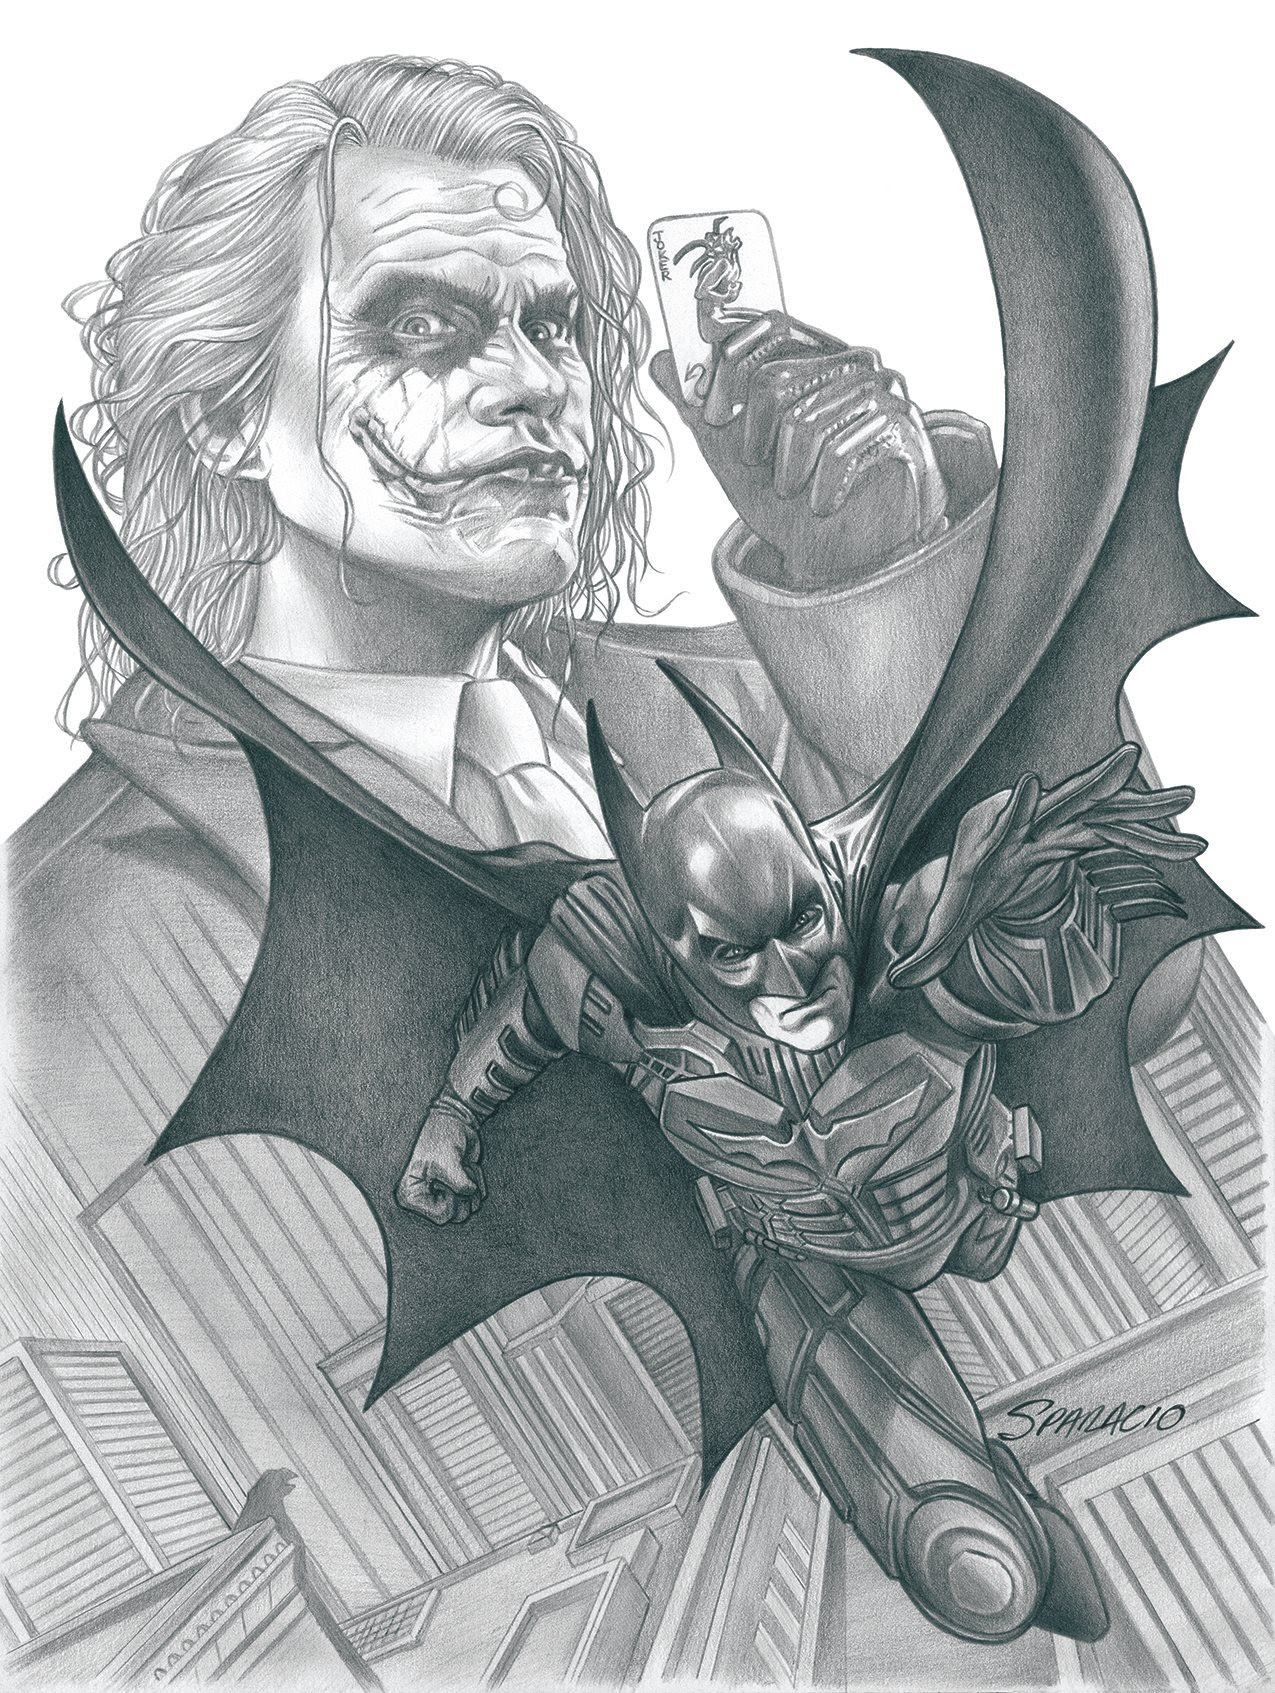 The Dark Knight and The Joker by Mark Sparacio